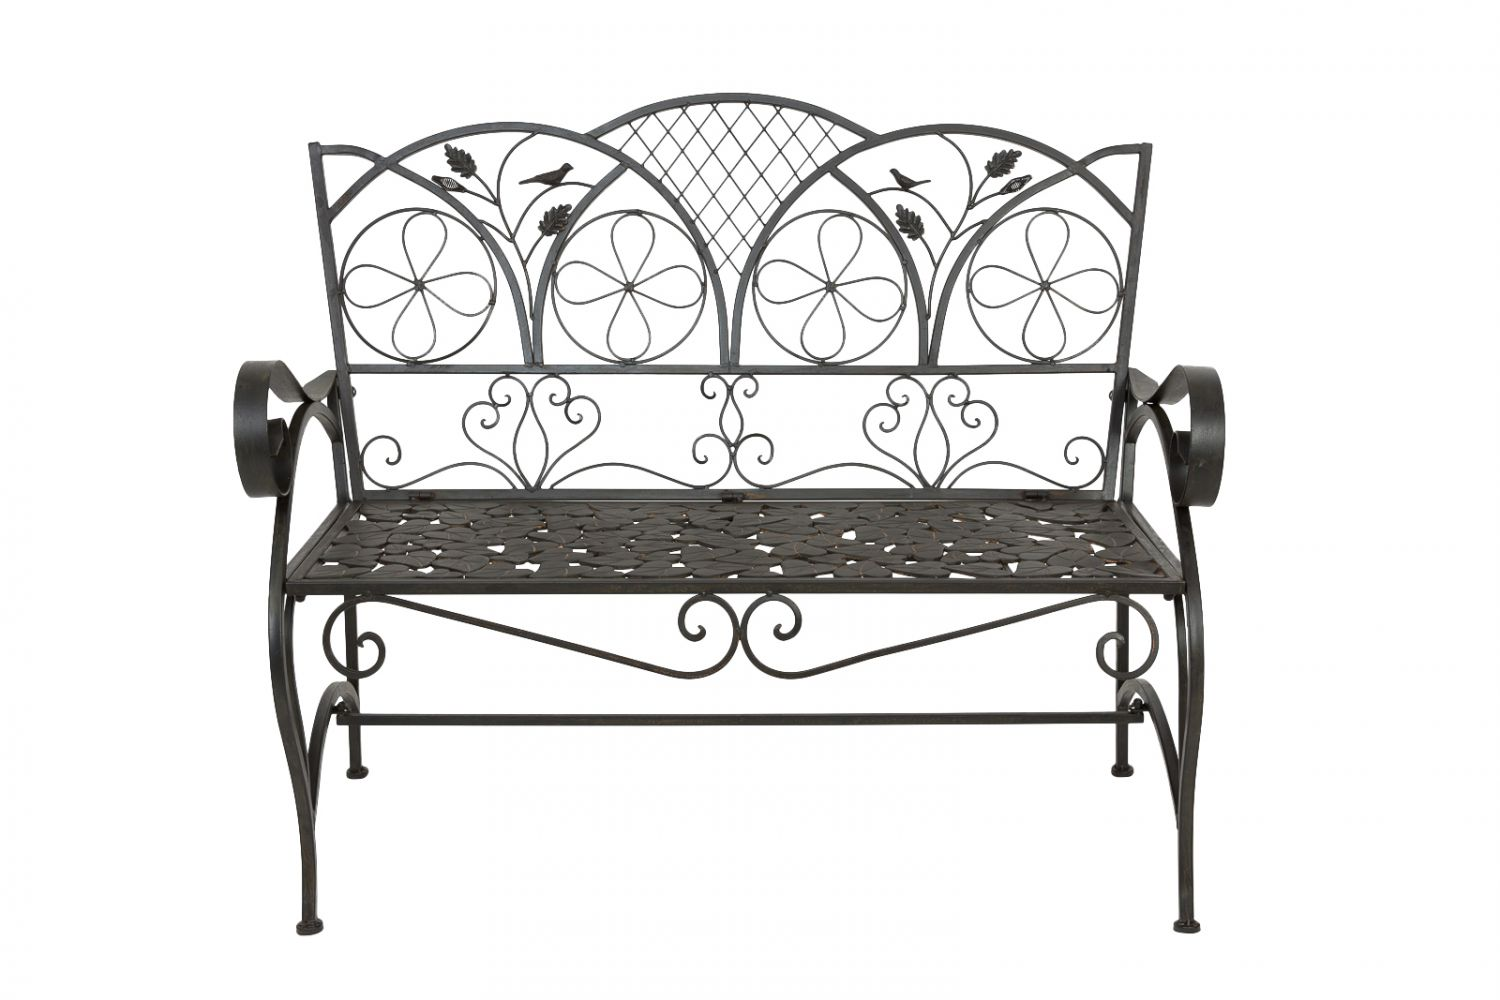 gartenbank eisen bank vogel blatt verzierung iron garden bench antik stil ebay. Black Bedroom Furniture Sets. Home Design Ideas